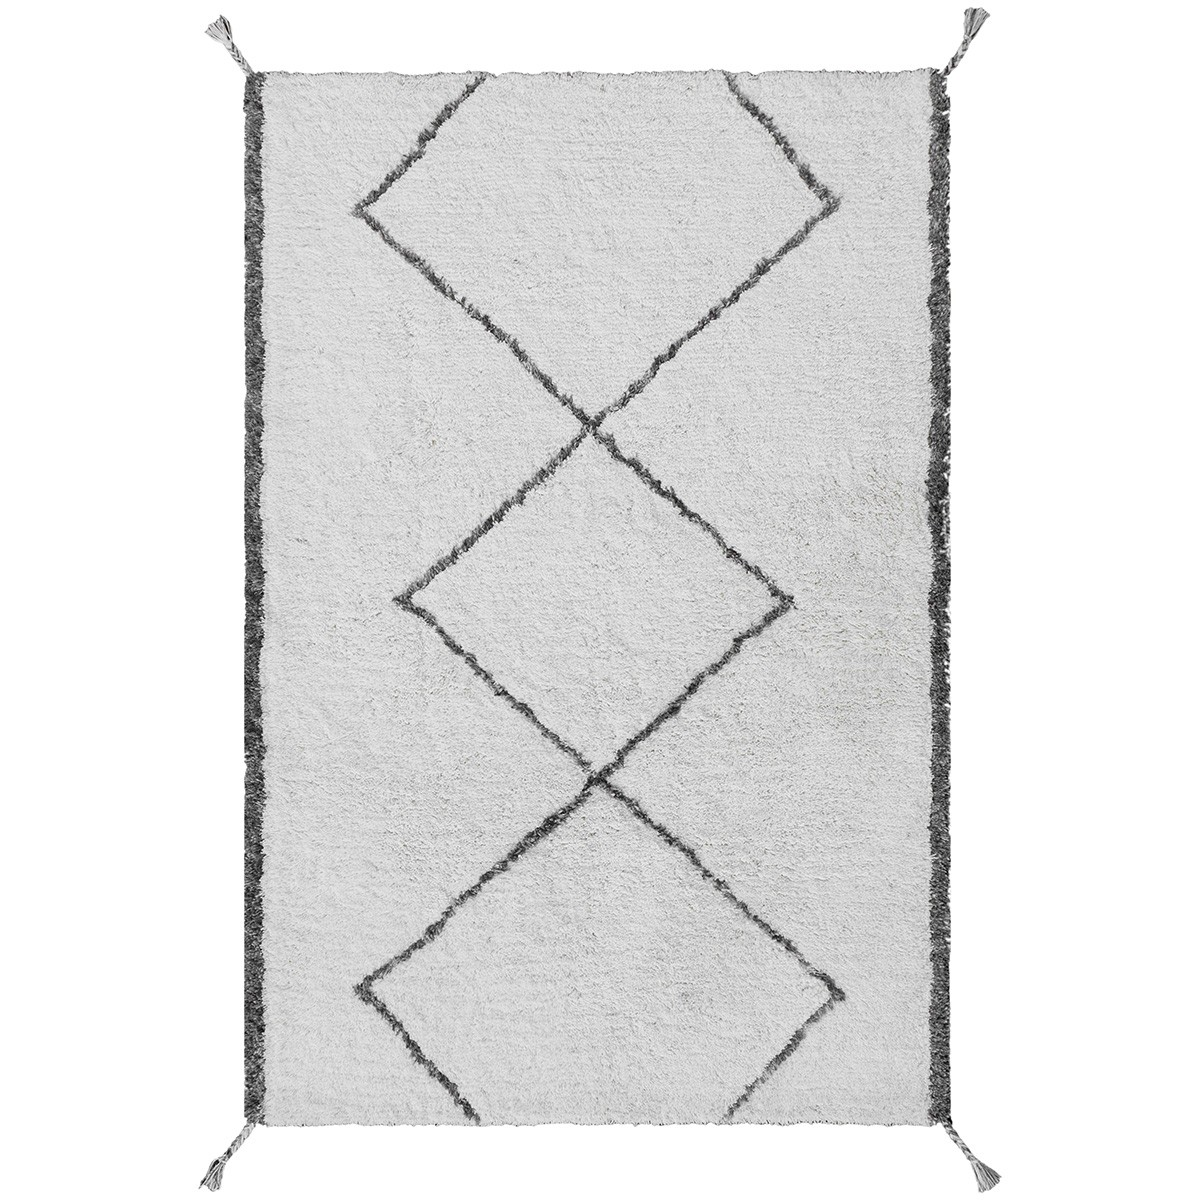 Safeyaa Tufted Shaggy Wool Rug, 230x160cm